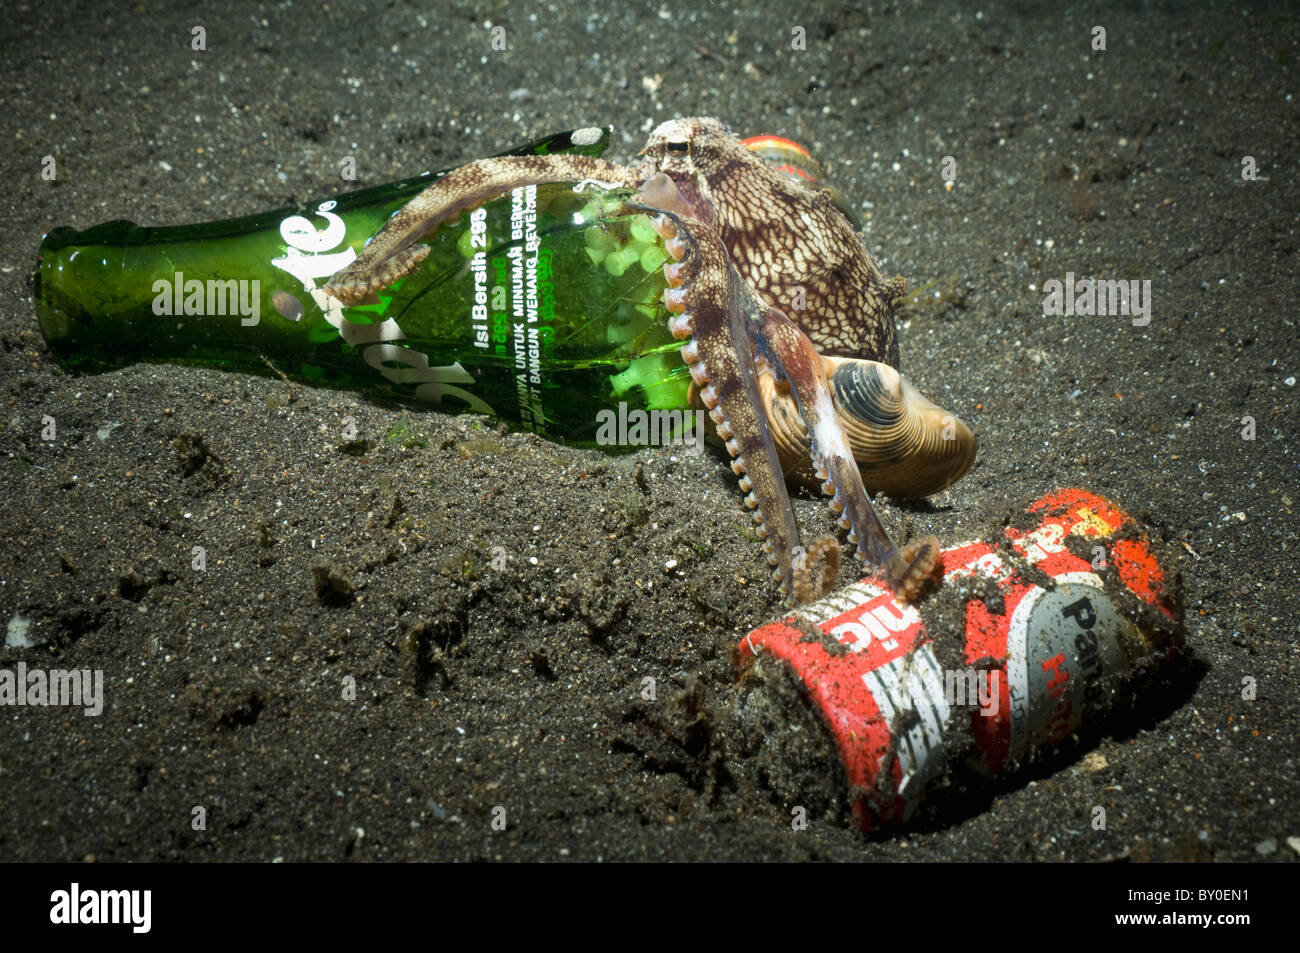 Veined octopus (Octopus marginatus) with a broken Sprite bottle it uses for shelter investigating a battery - Stock Image